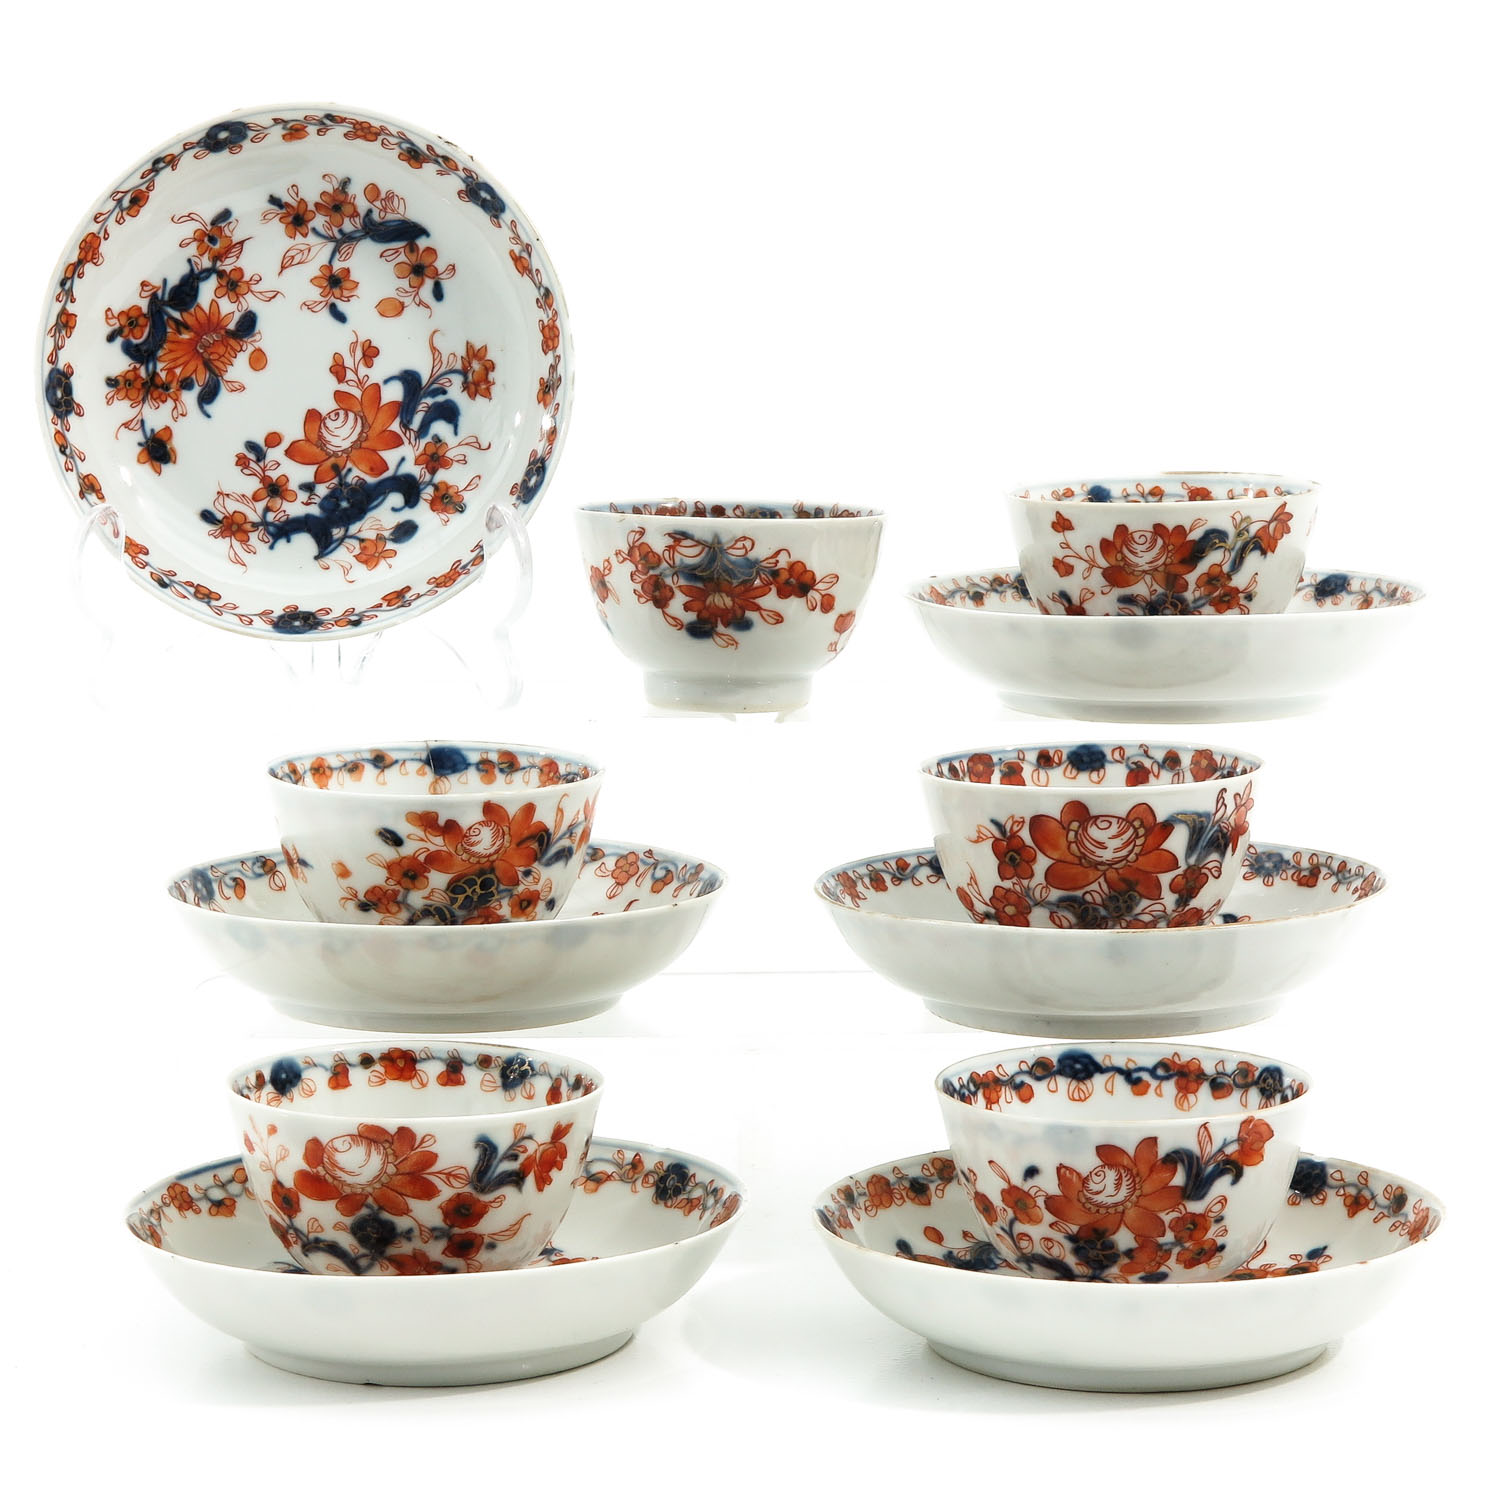 A Collection of Imari Cups and Saucers